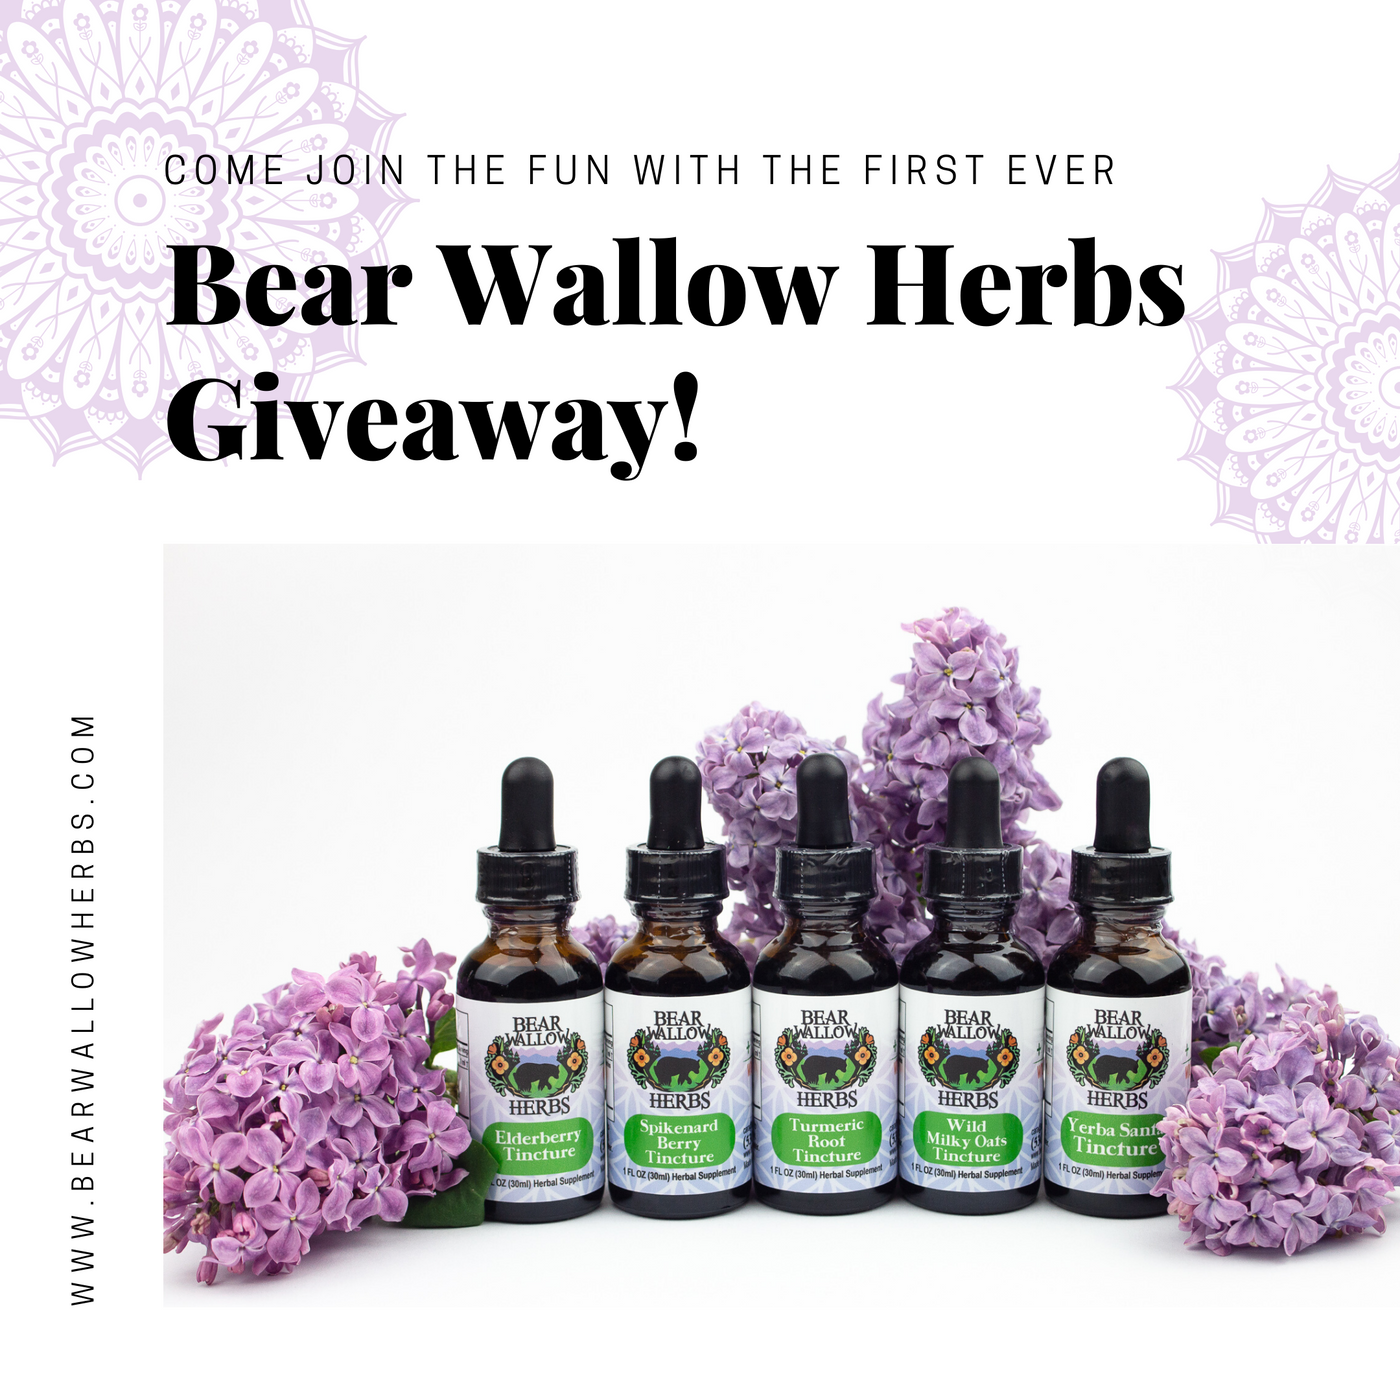 Chance to Win a FREE Herbal Gift Kit!